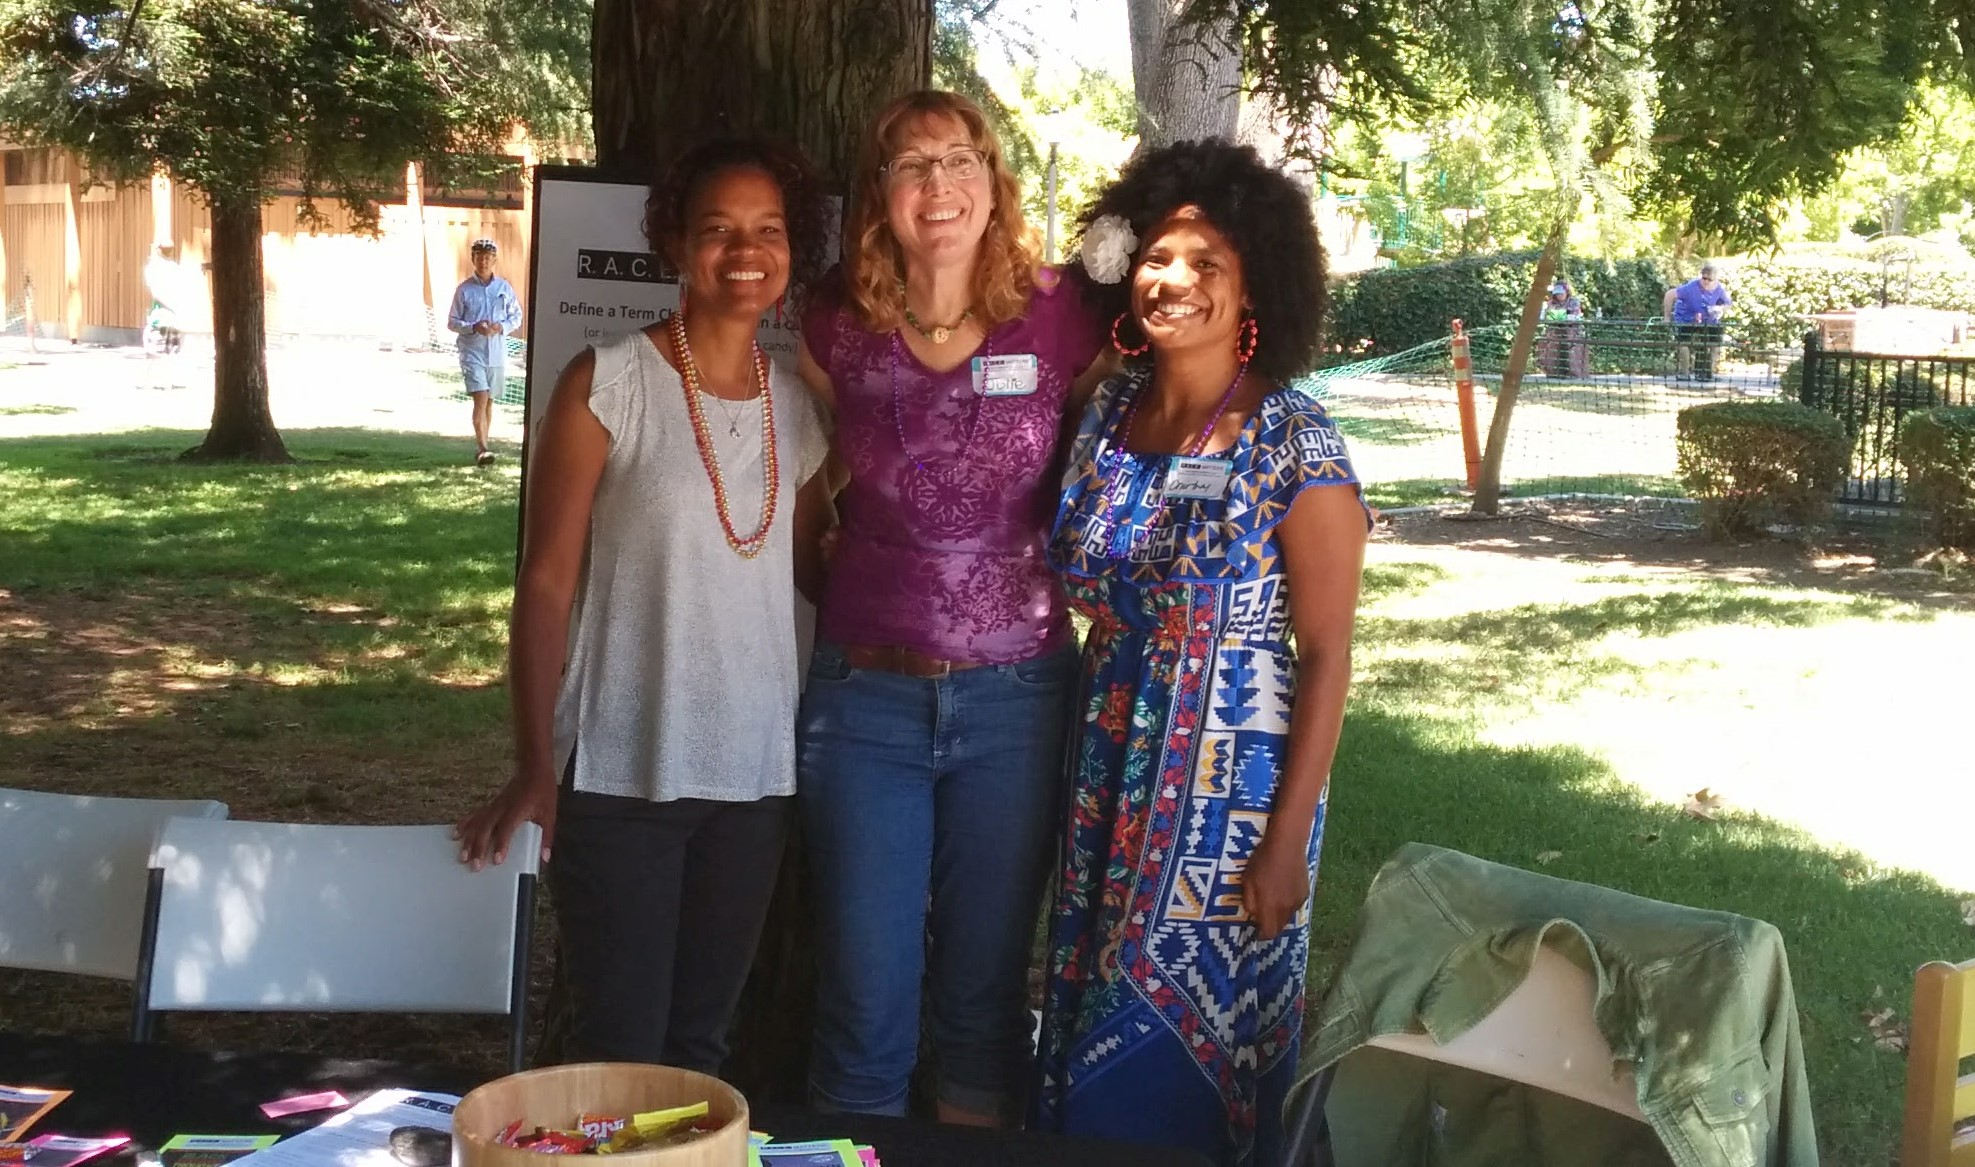 Julie Lynem, Julie Fallon, and Courtney Haile woman a booth at a SLO Progressives event in 2017.